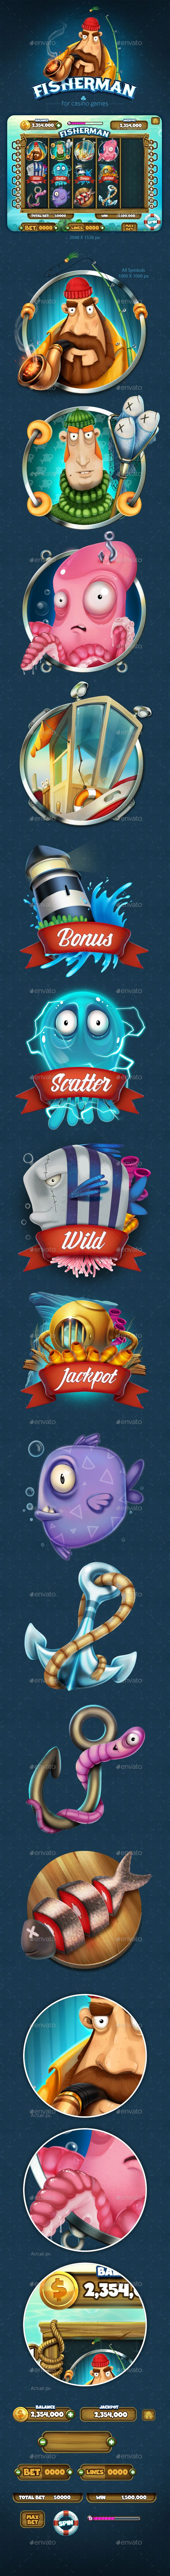 Fisherman Slot Game for Mobile Platforms — Photoshop PSD #scatter #icon • Download ➝ https://graphicriver.net/item/fisherman-slot-game-for-mobile-platforms/13977921?ref=pxcr